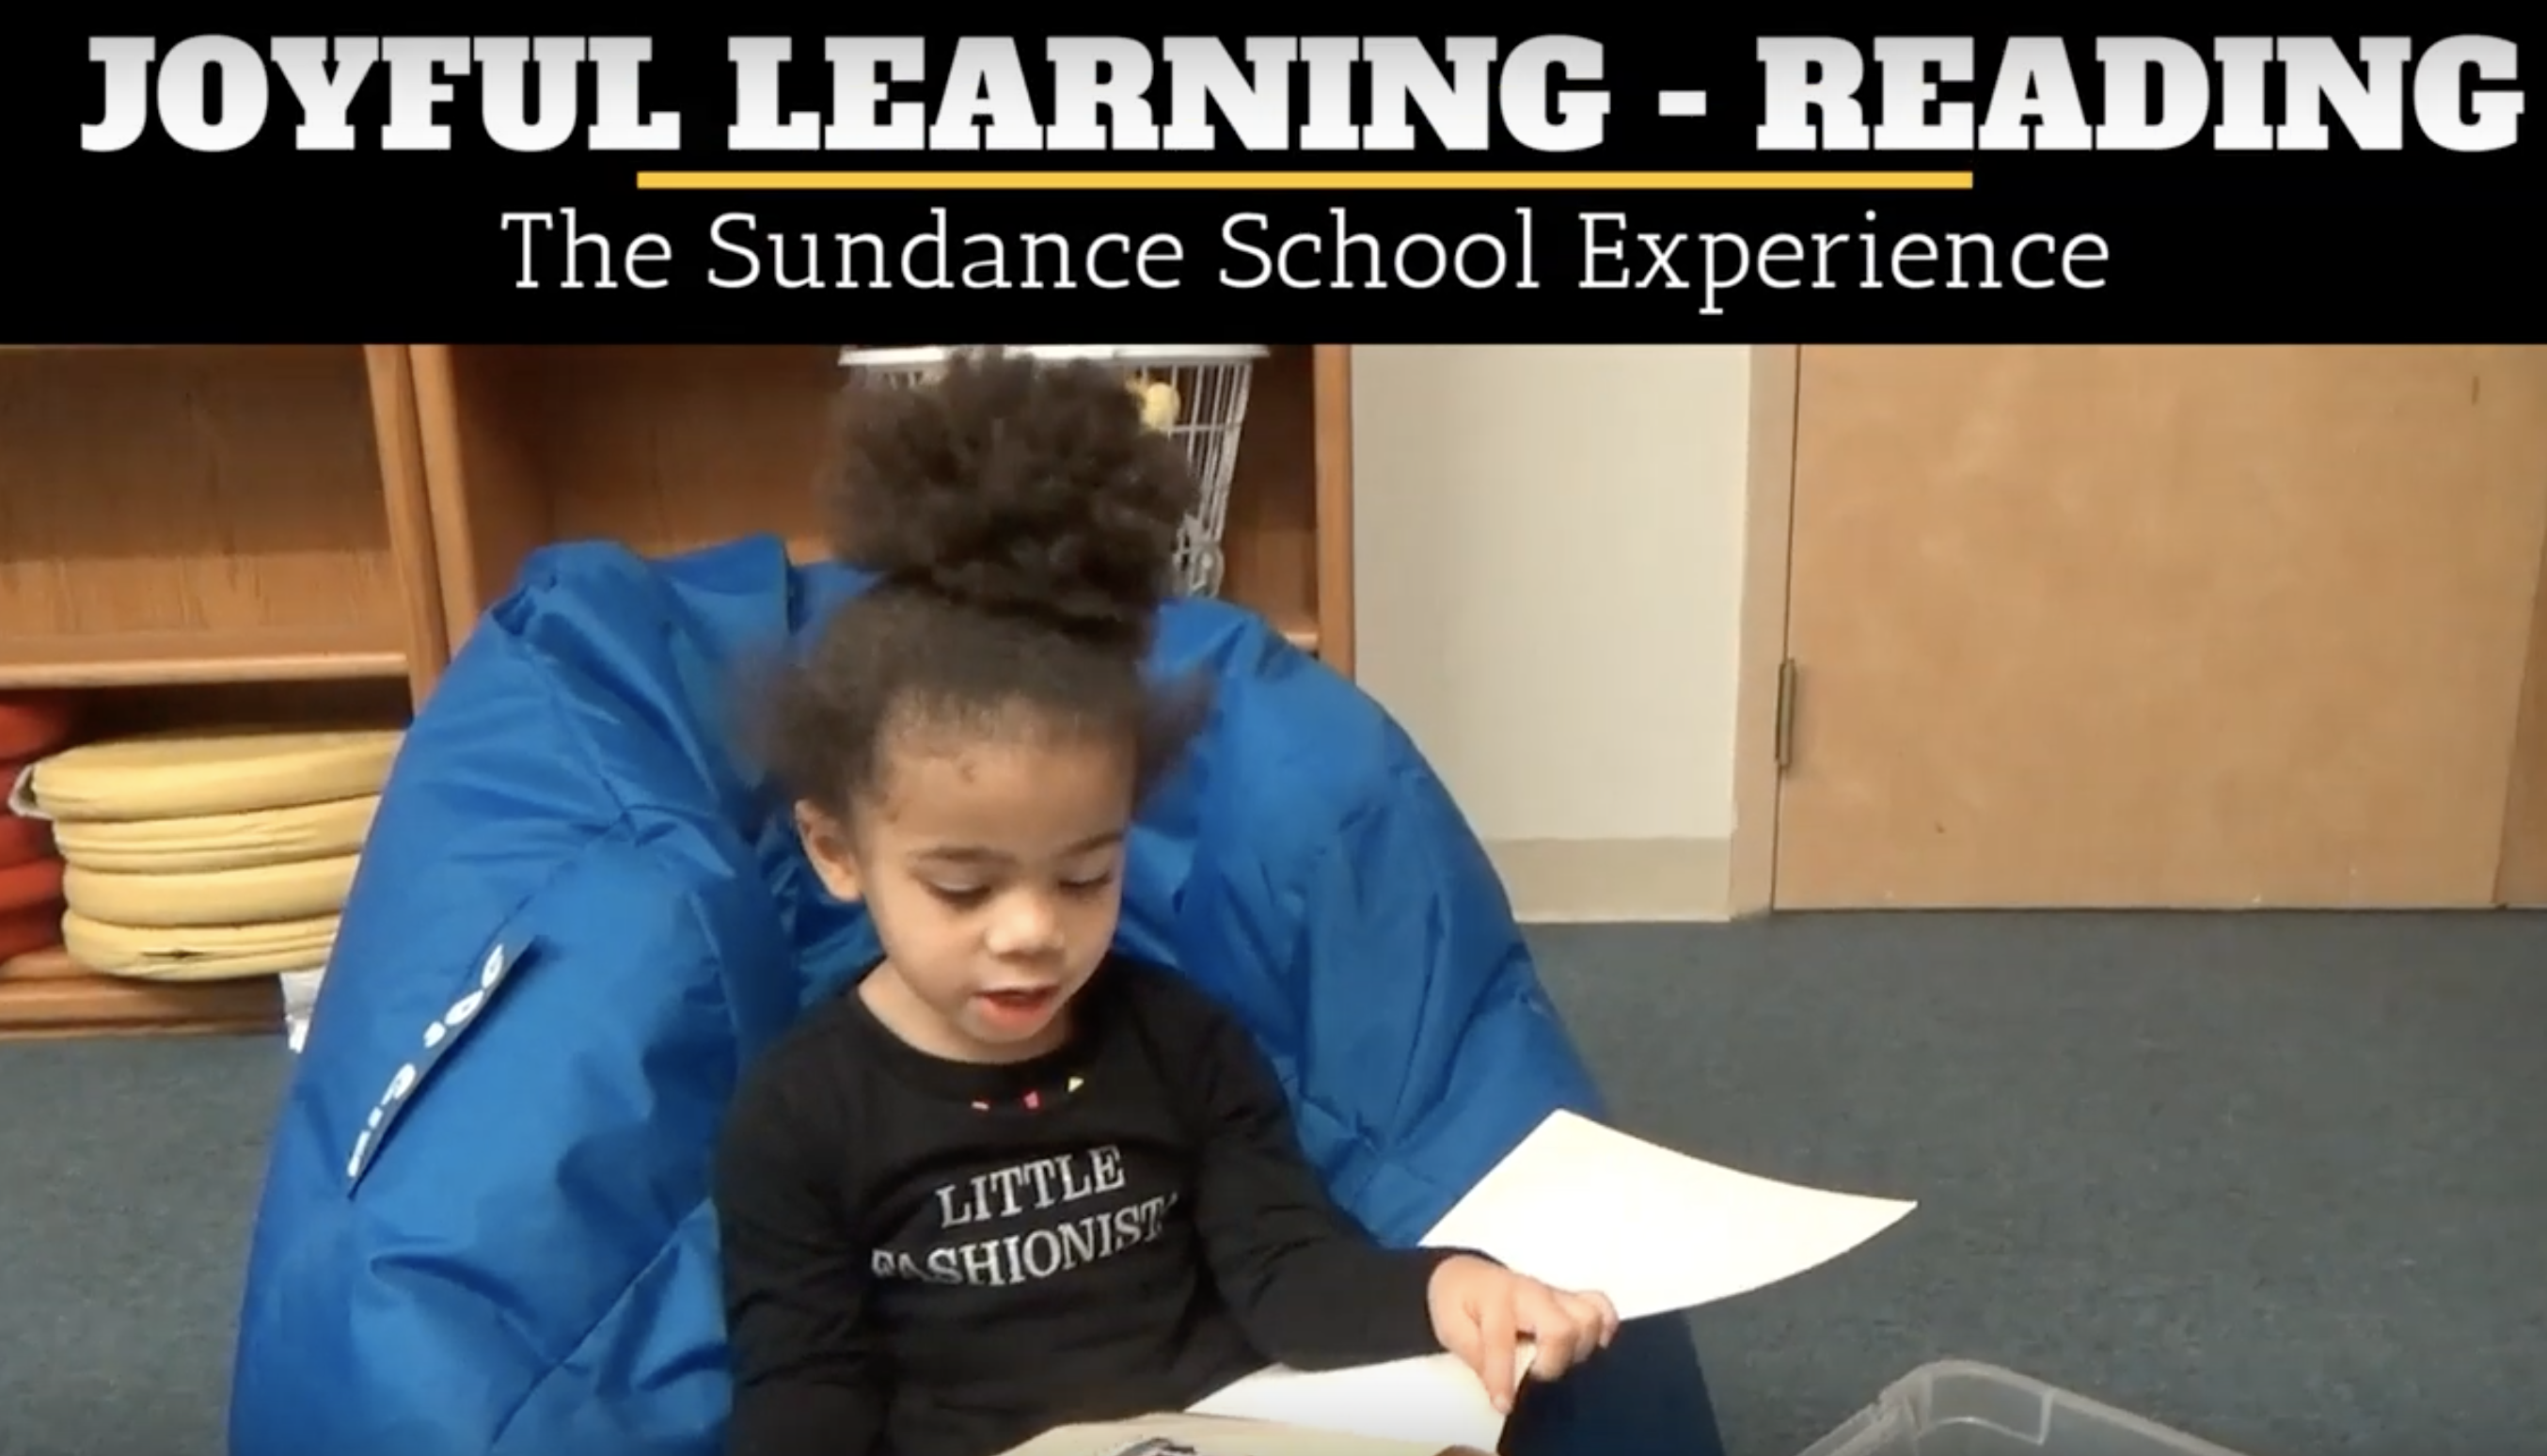 The Sundance School Experience - Joyful Learning (Reading)